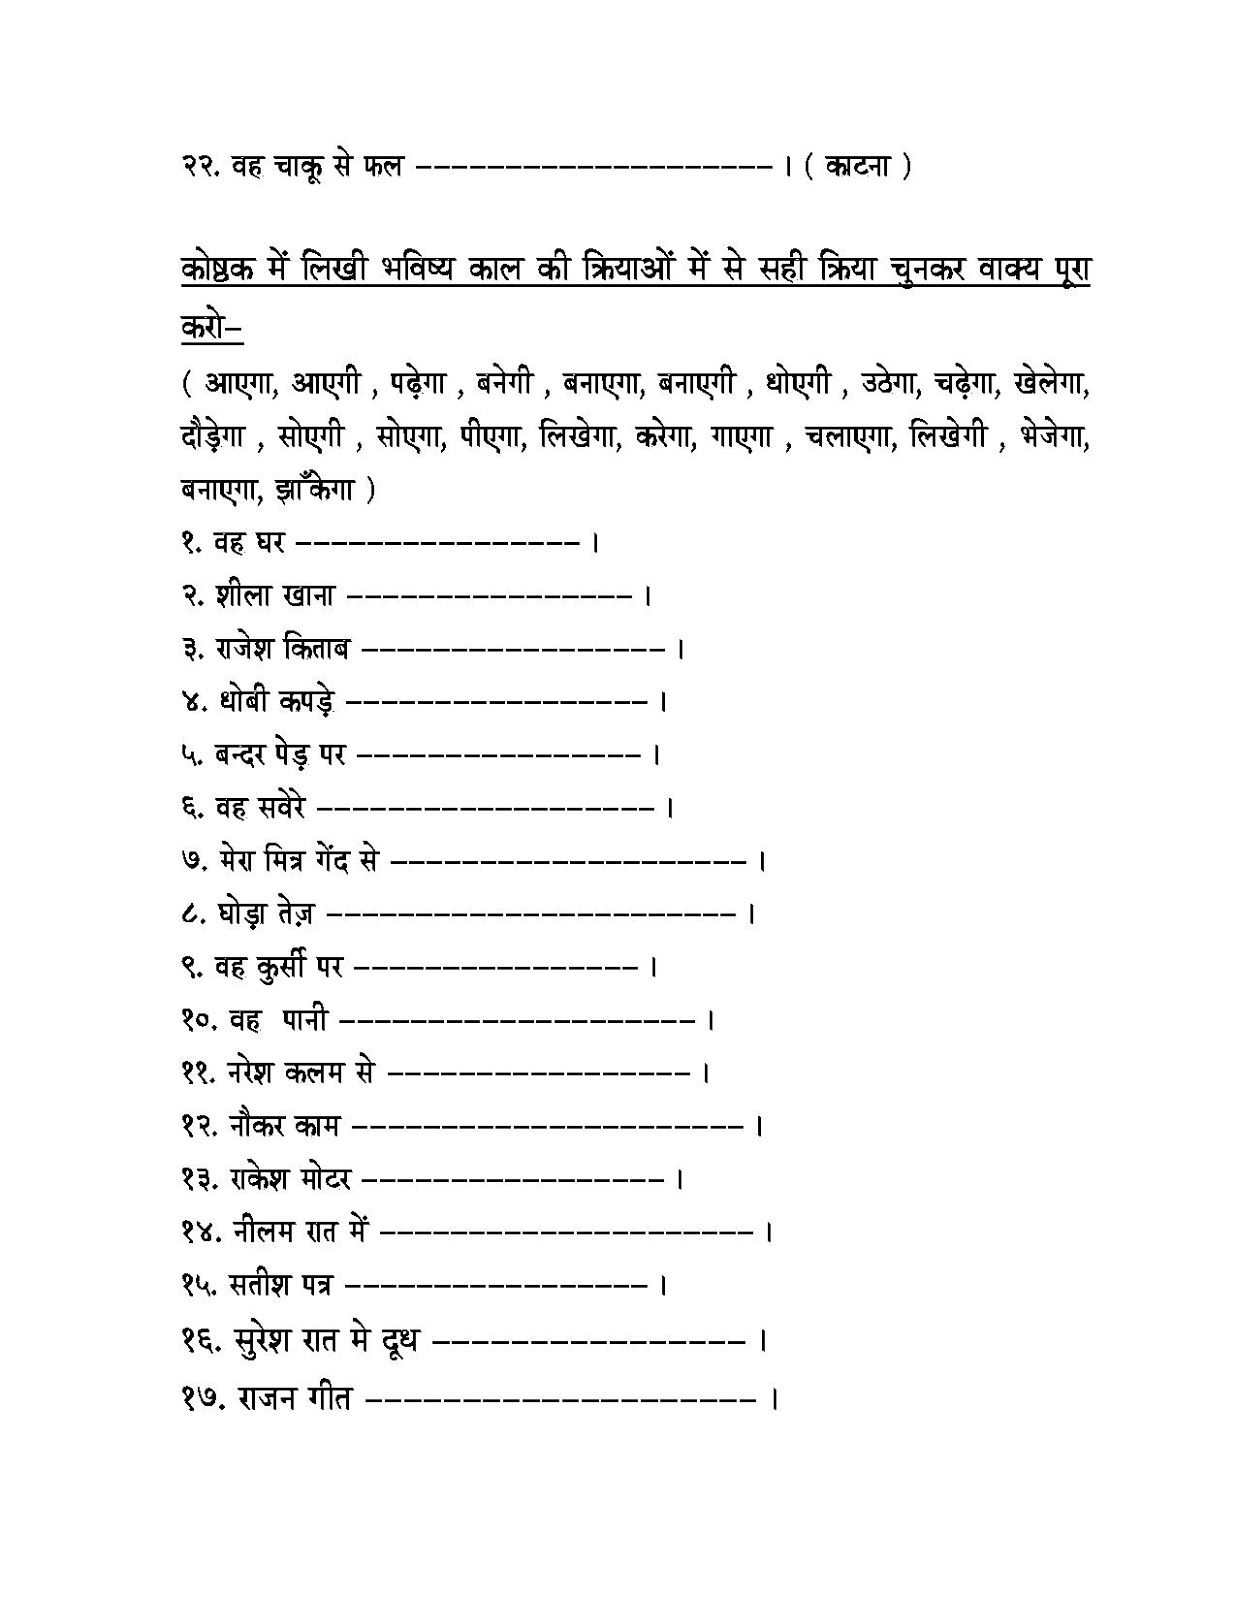 Collection Of Sangya Worksheets In Hindi For Grade 4 Download Them And Try To Solve Hindi Worksheets Grammar Worksheets Worksheets